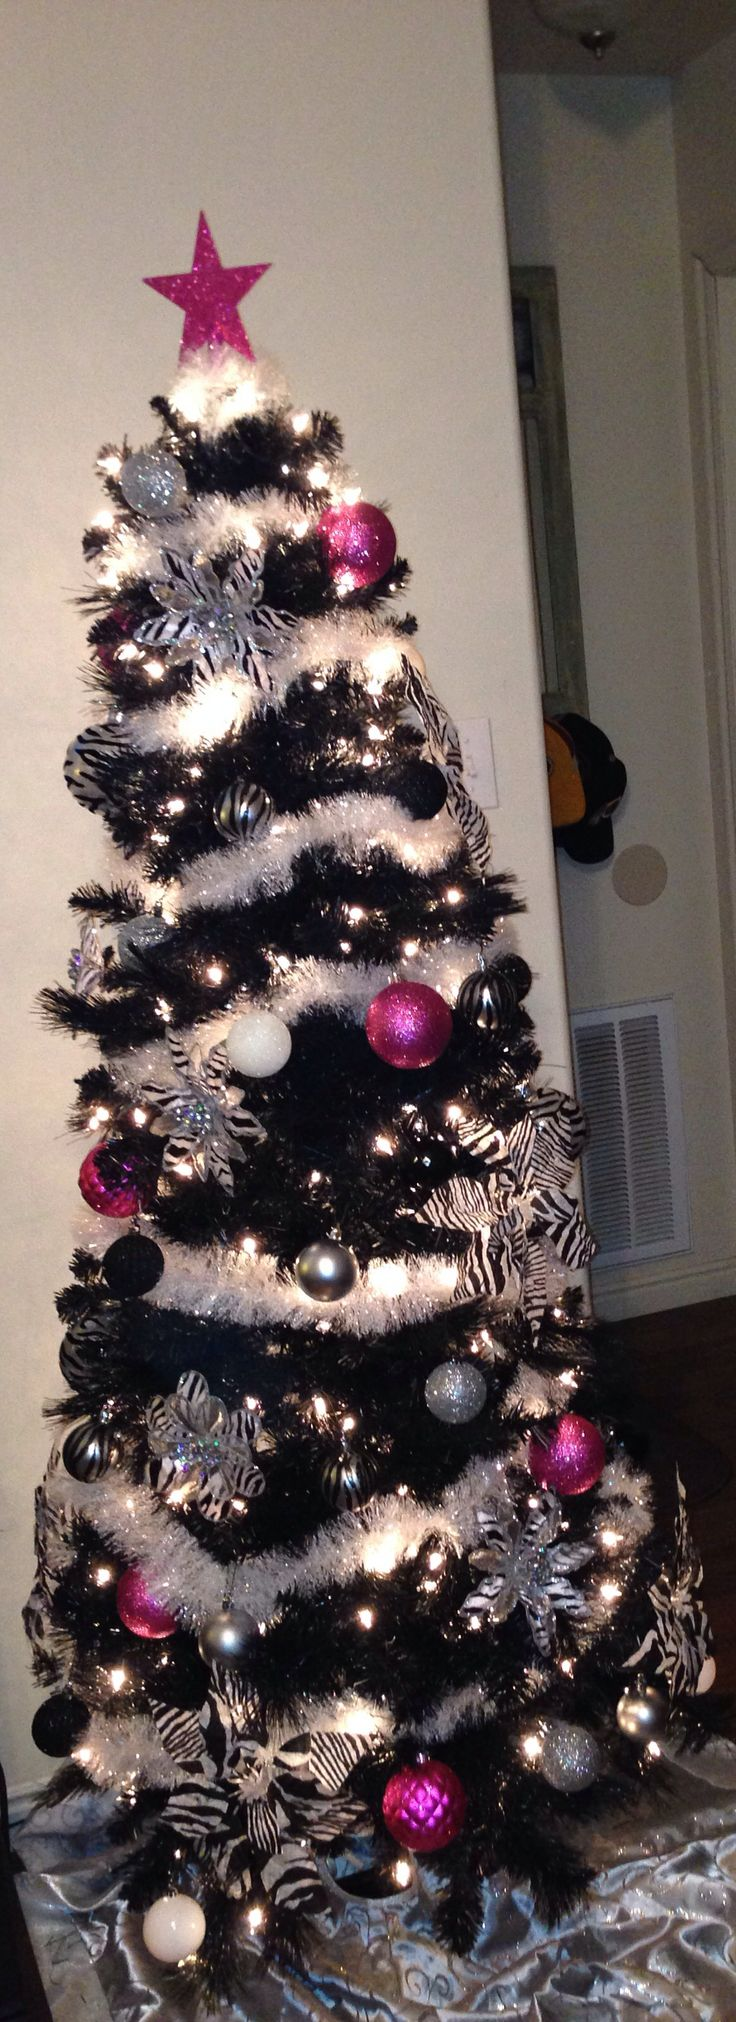 Hot pink christmas decorations - Zebra Christmas Tree With Hints Of Hot Pink